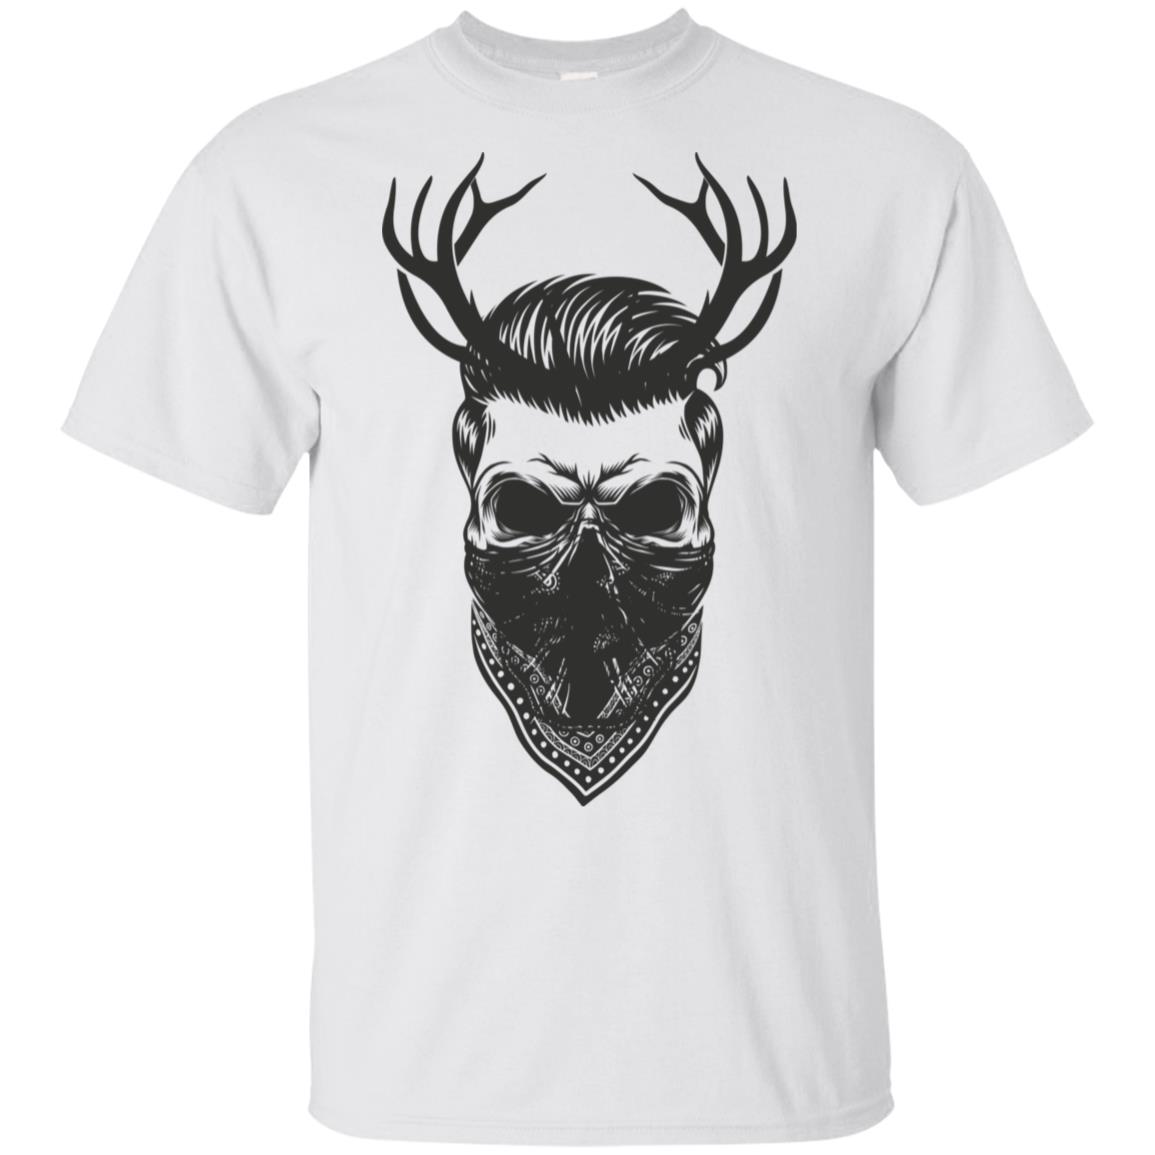 Hipster With Deer Antlers & B&ana Motorcyclist Unisex Short Sleeve